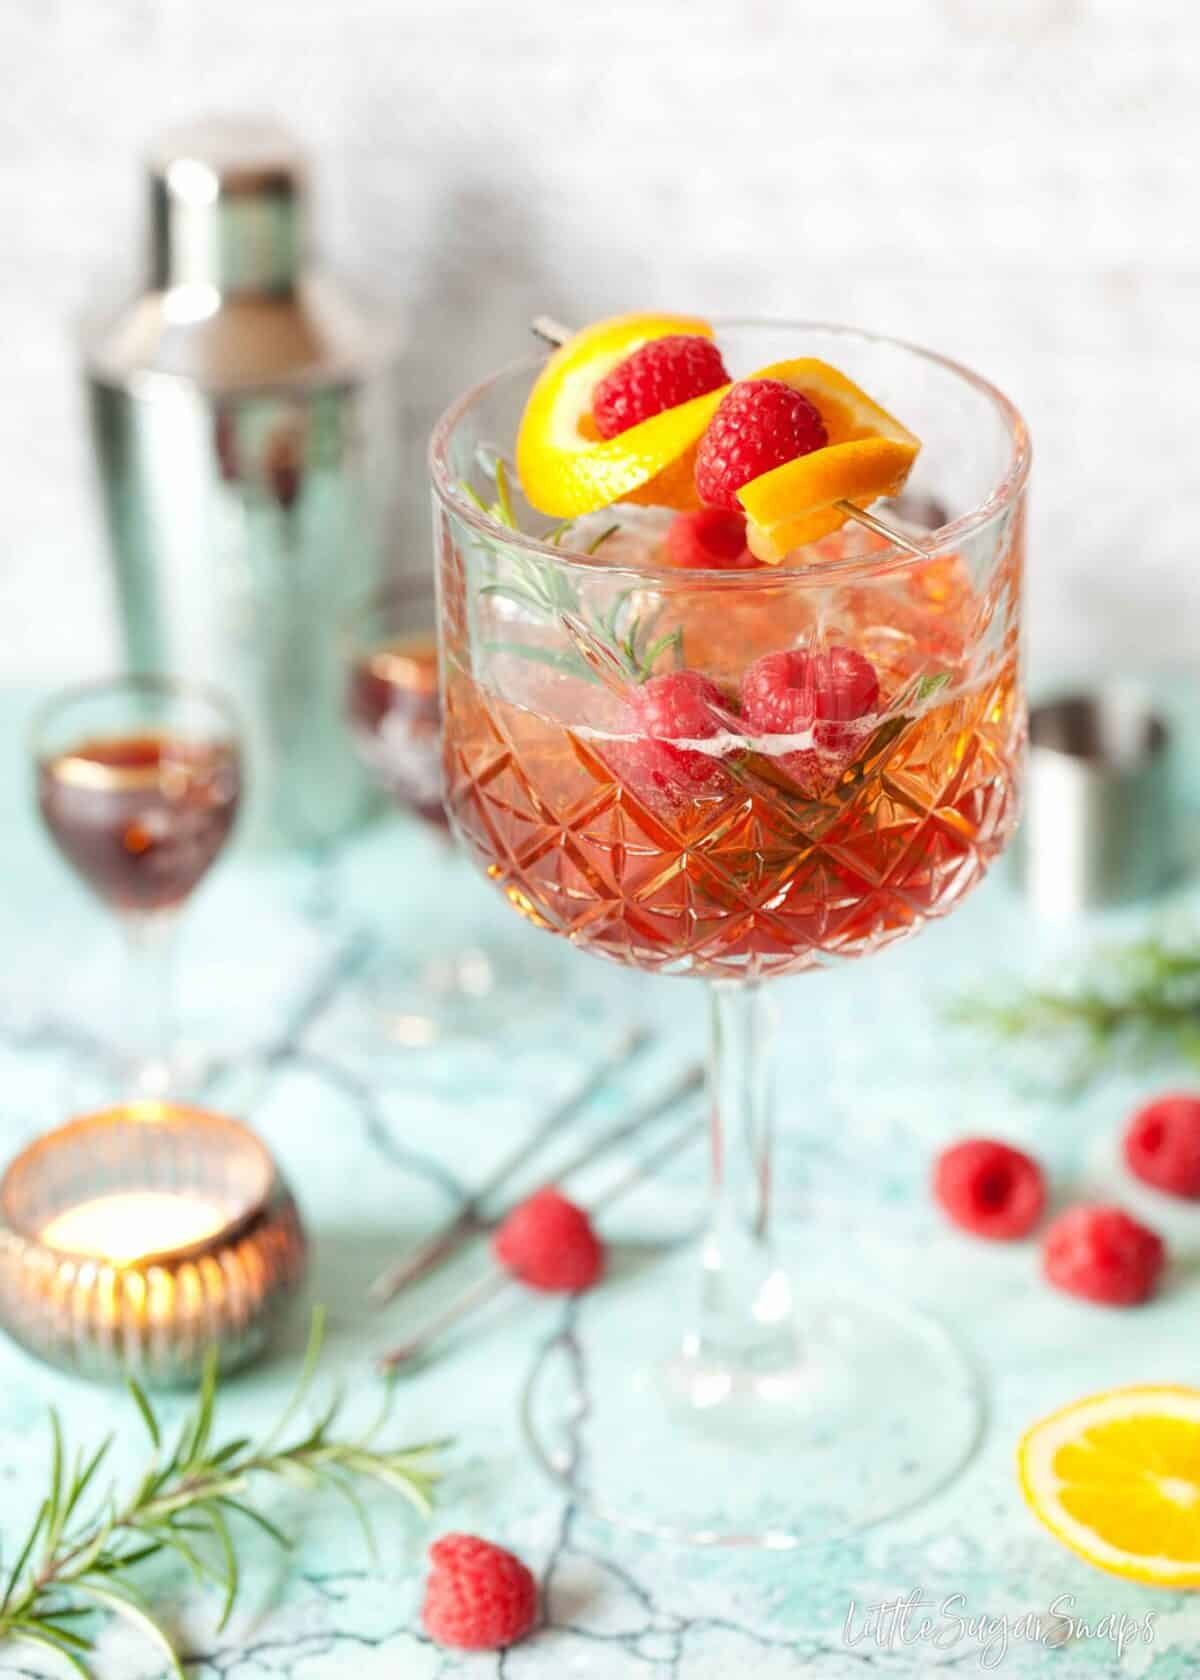 a winter aperol spritz with sloe gin, garnished with orange, raspberry and rosemary